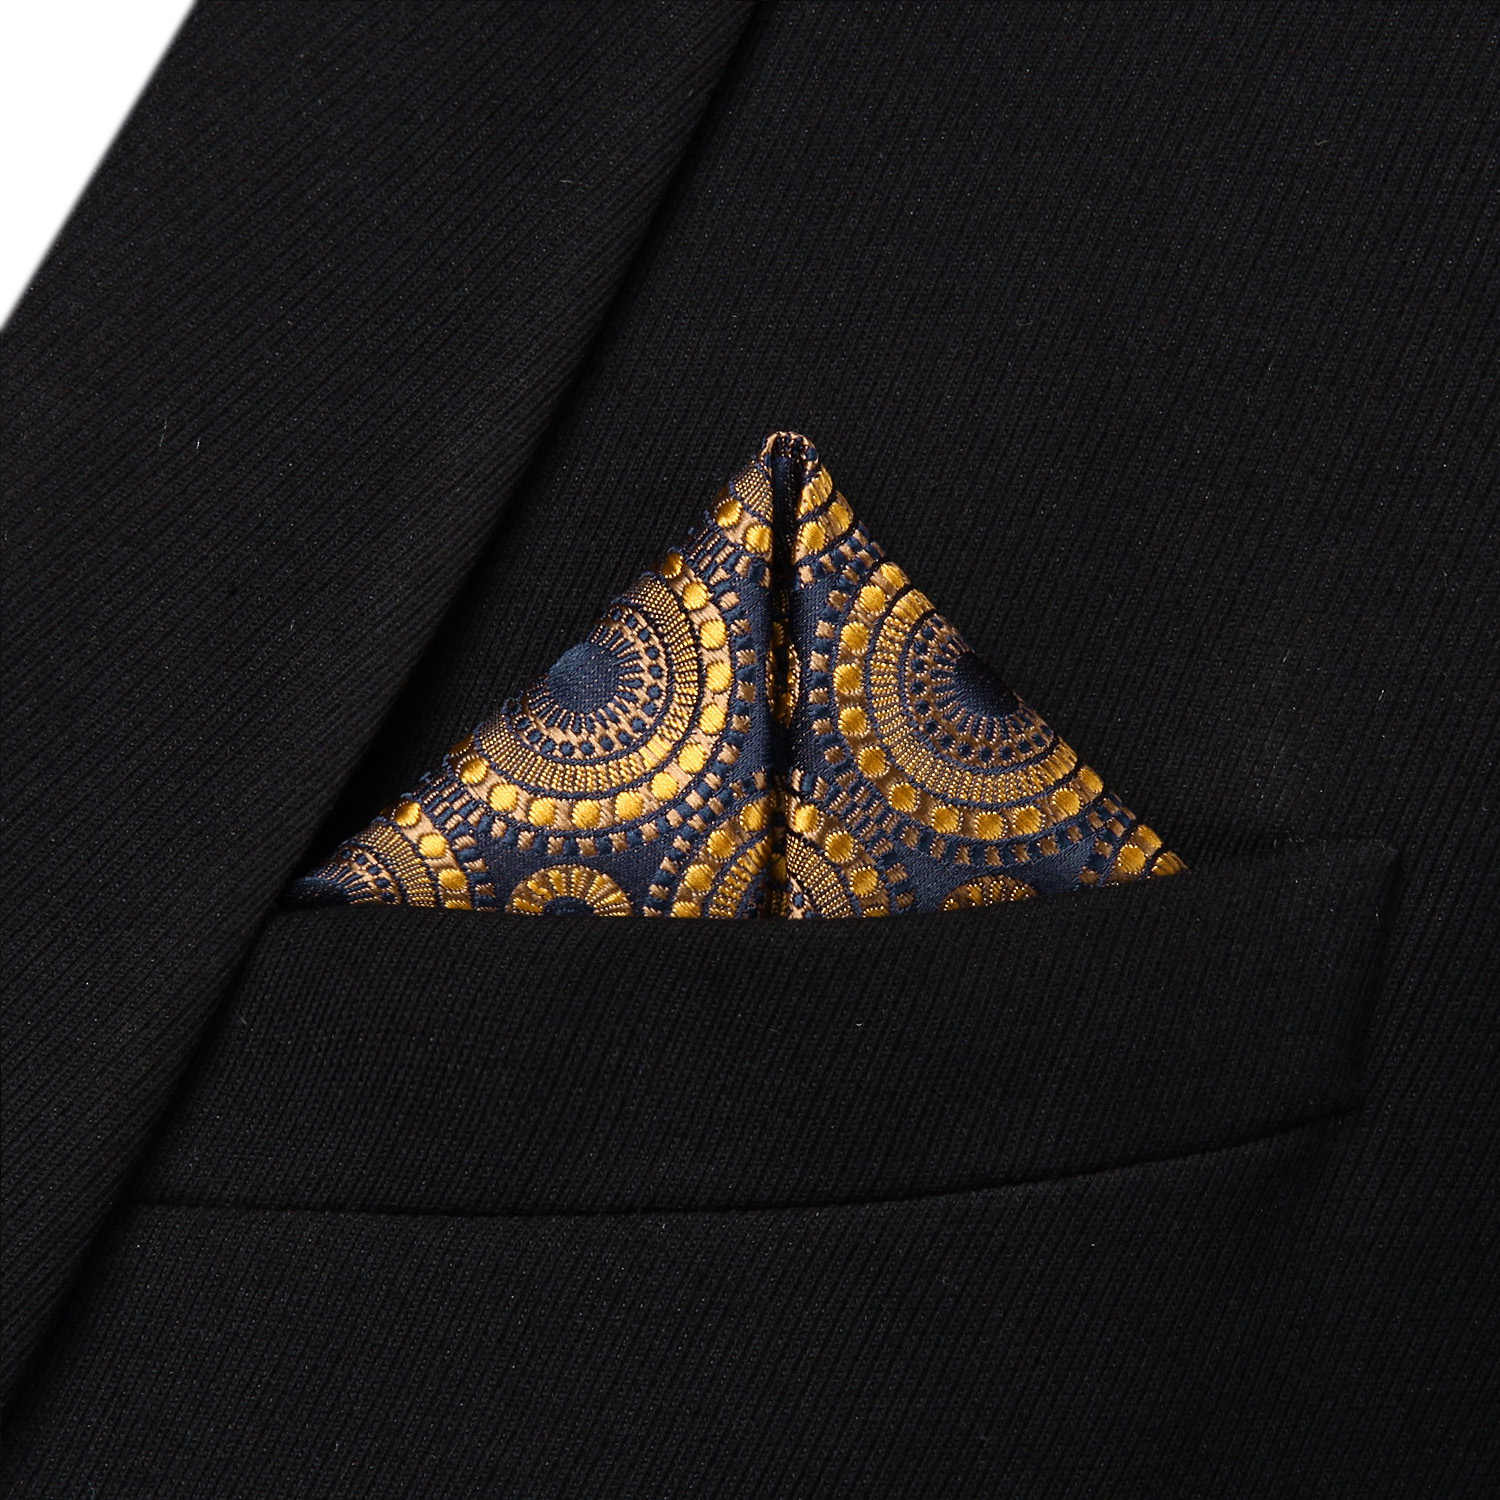 ca54c1c12a5d ... Party Pocket Square Classic Wedding BF804DS Gold Navy Blue Floral  Bowtie Men Silk Self Bow Tie